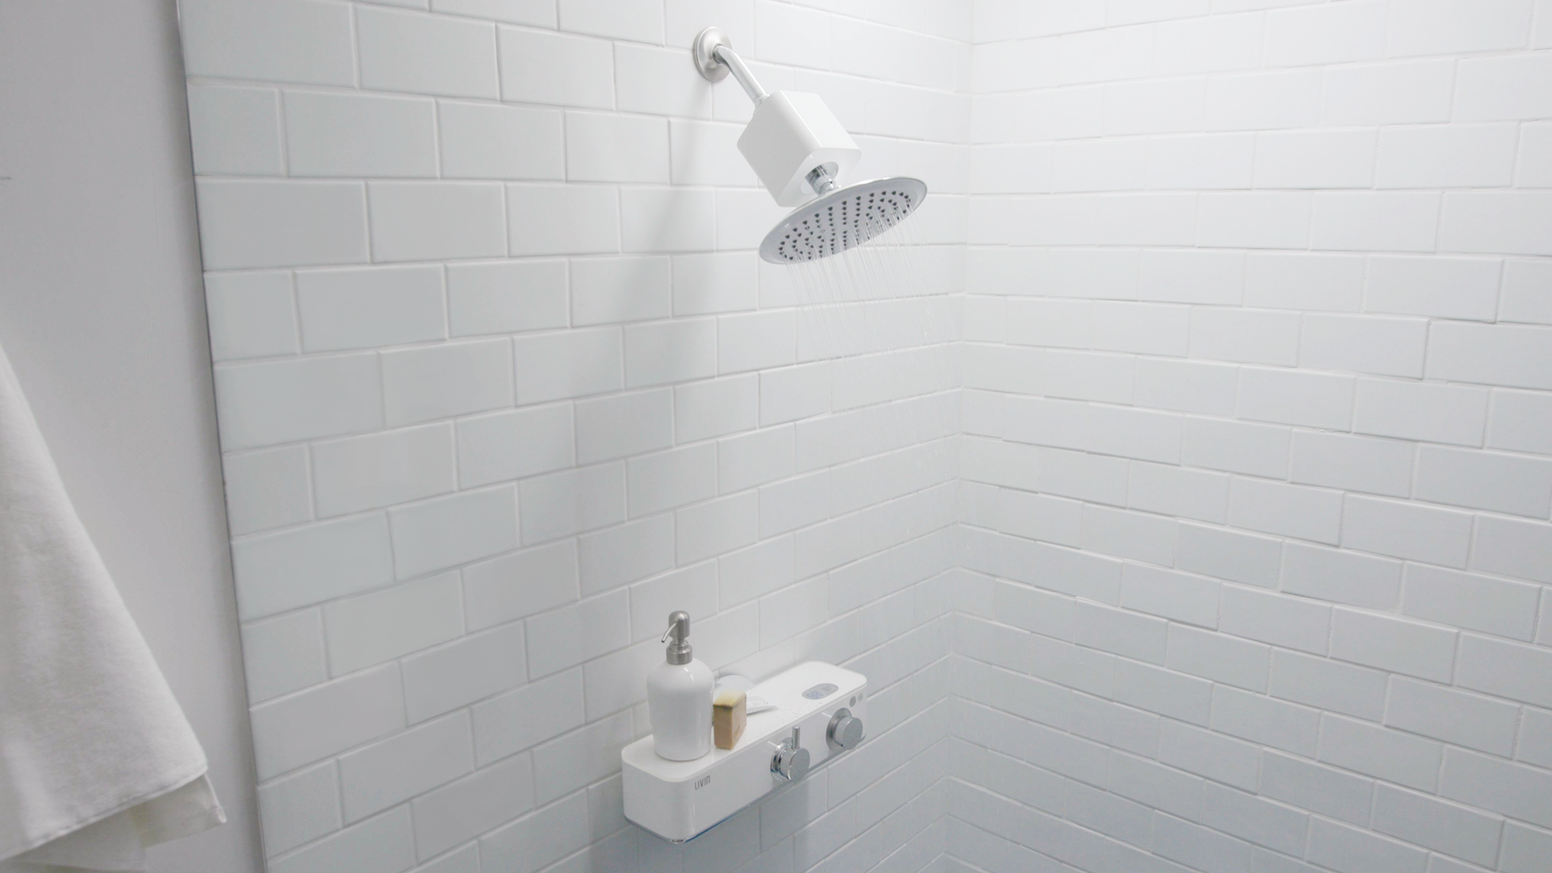 Tap a button, get a perfect shower - perfect temperature, water saving, smart integration, easy install, and sleek design.